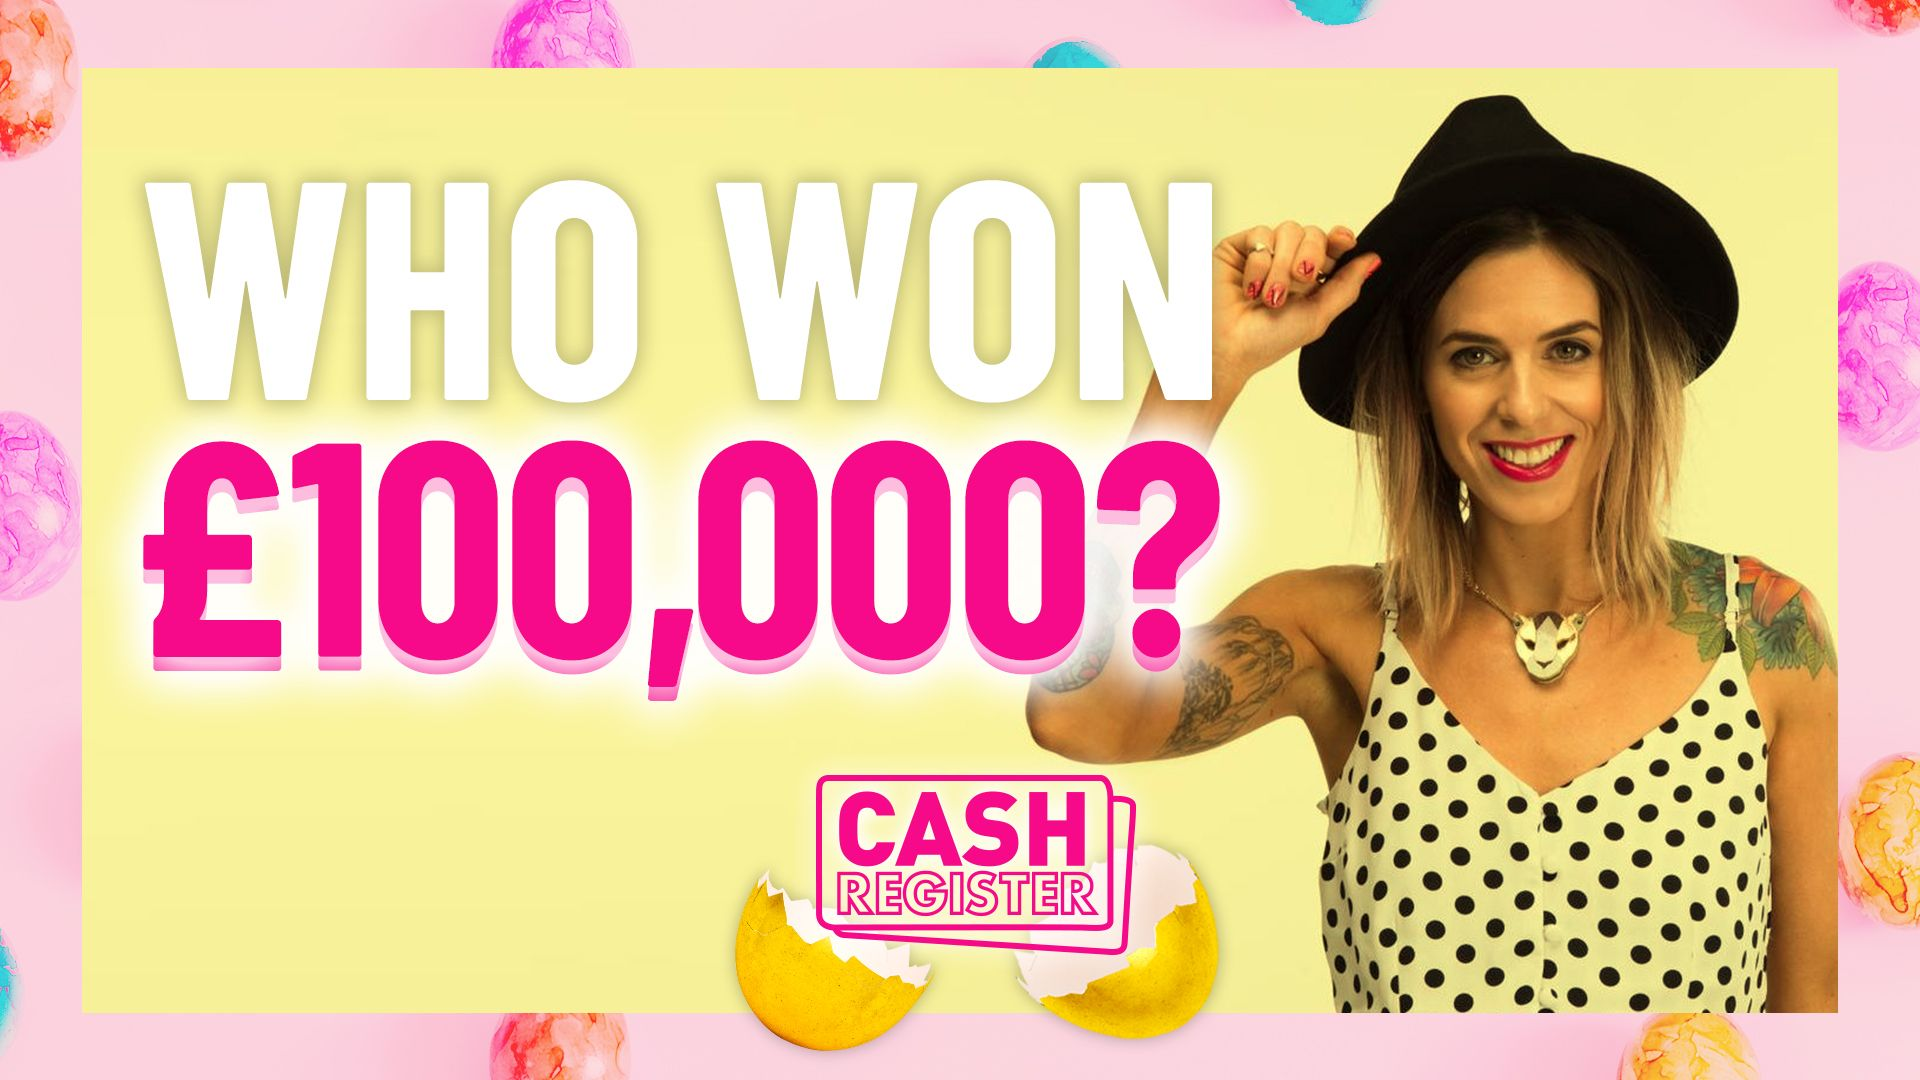 Who won £100,000 on Good Friday?